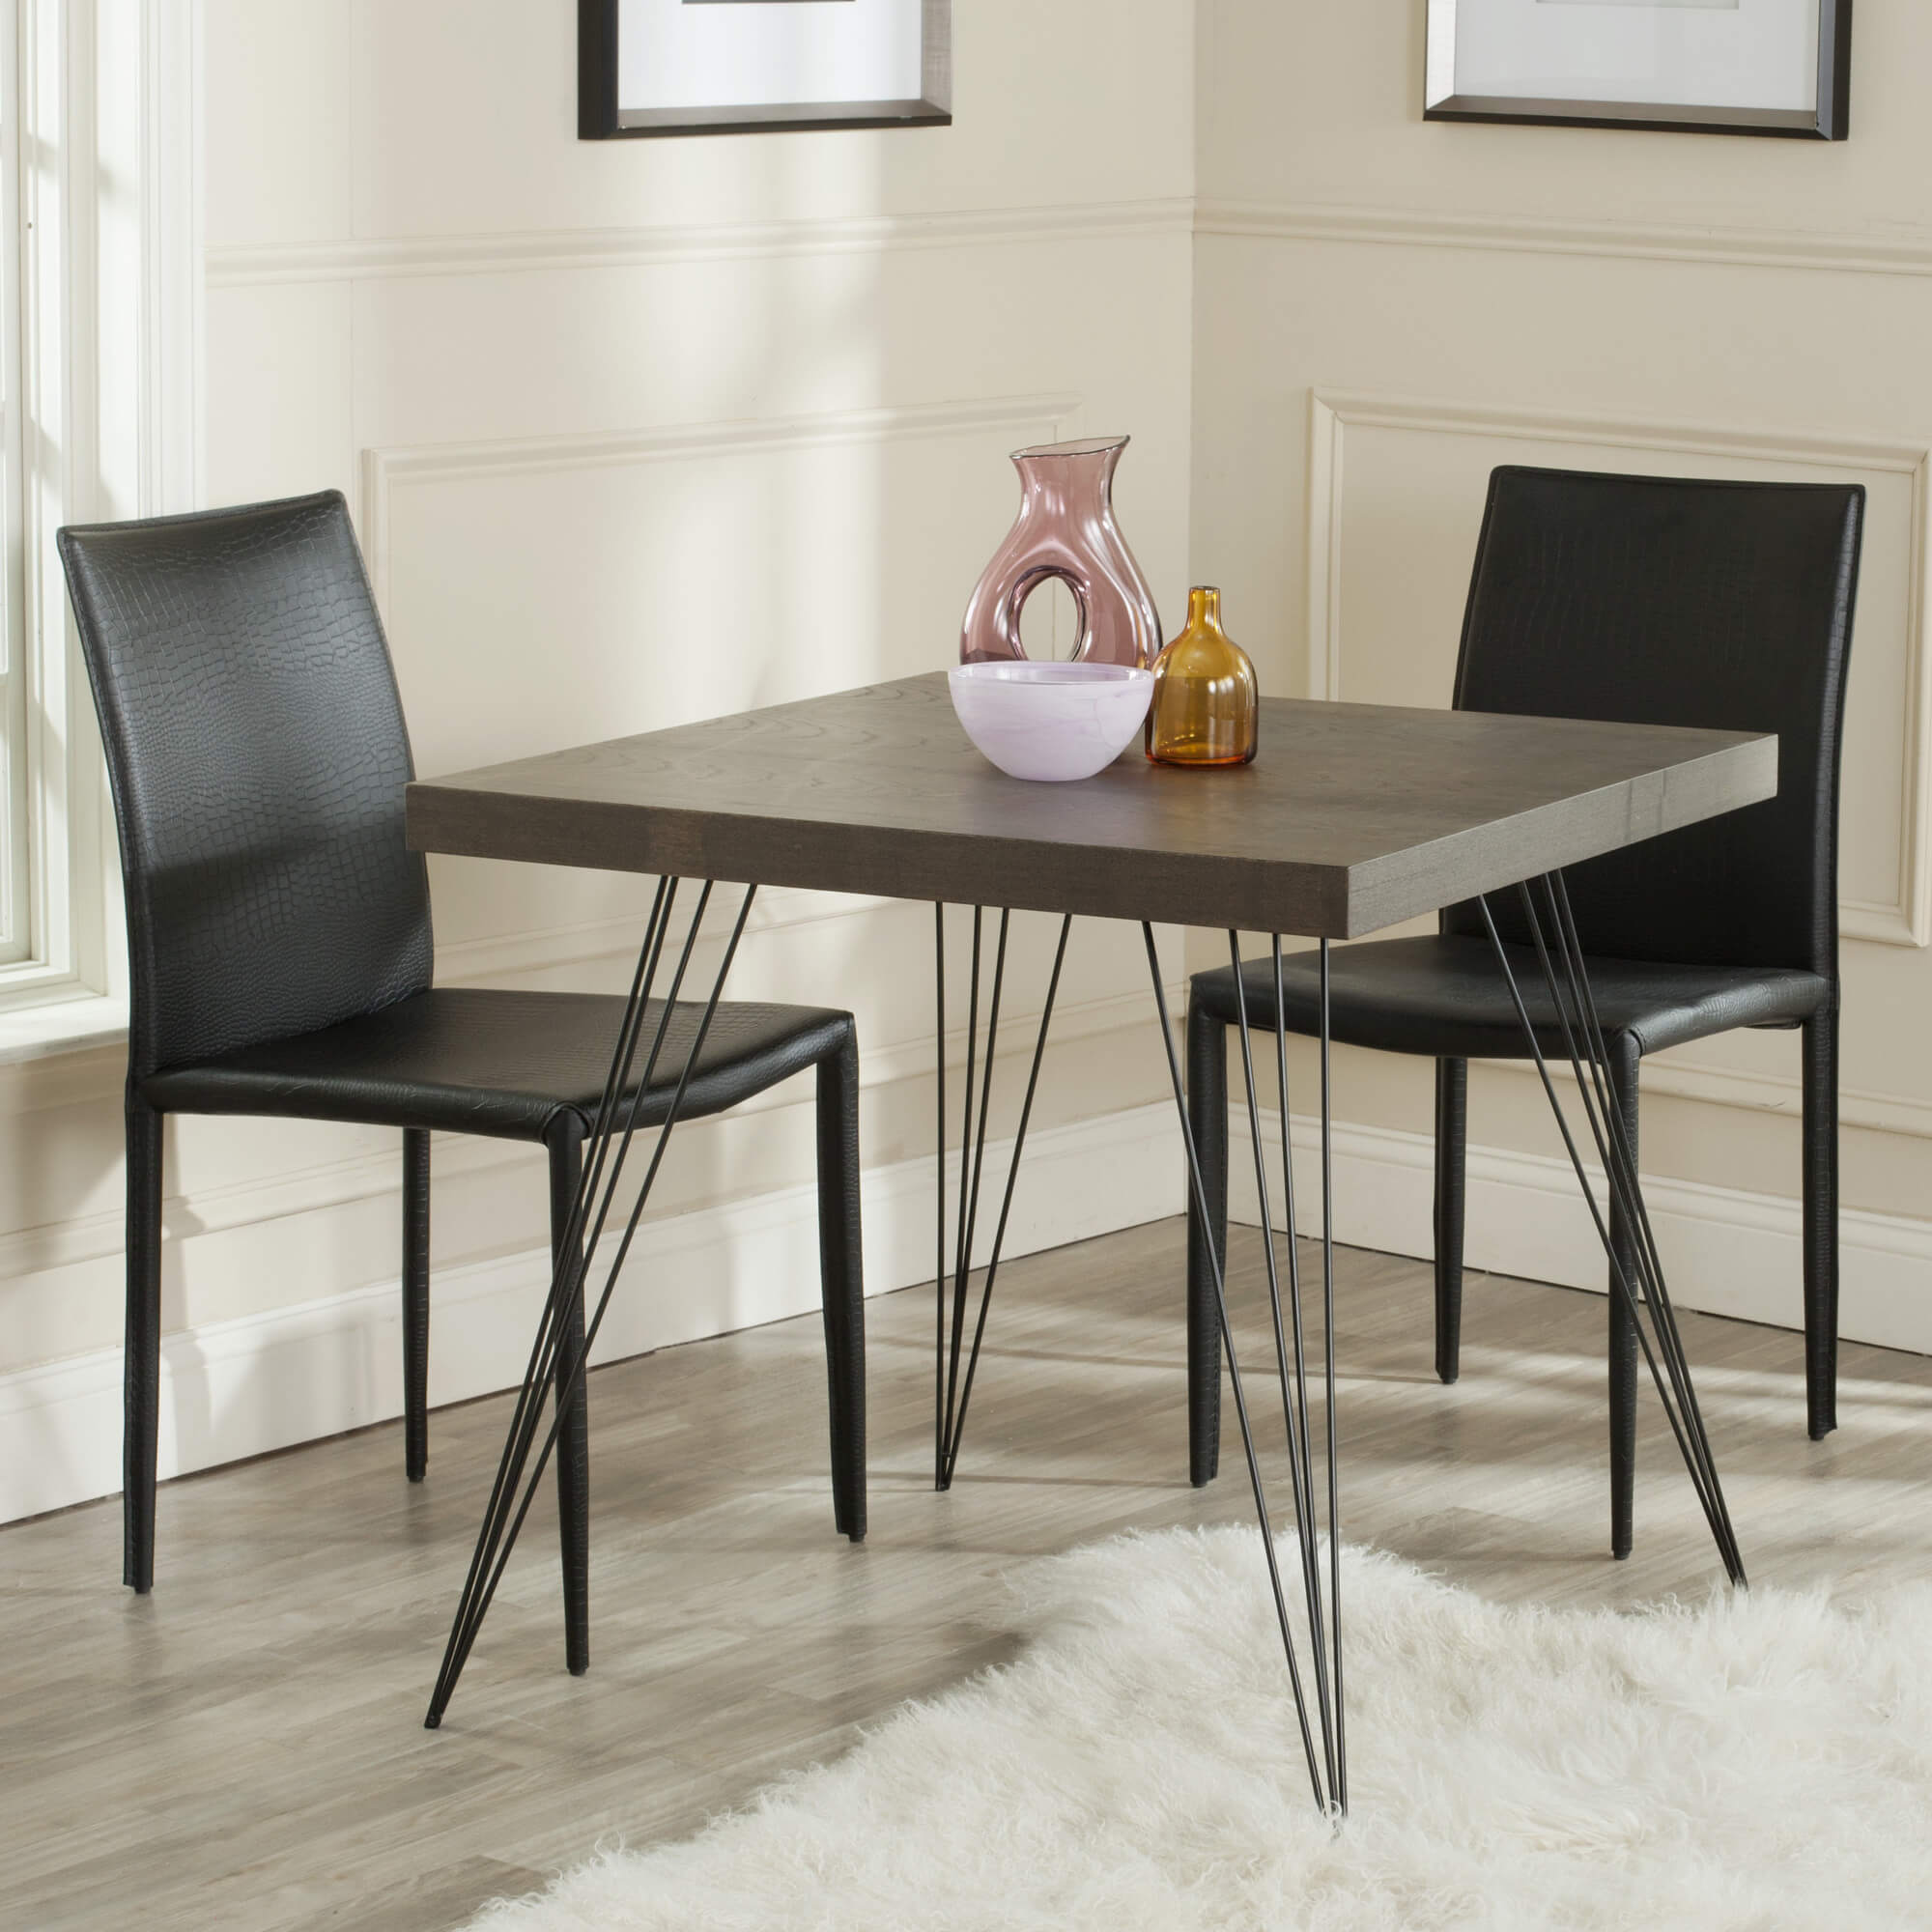 38 Types Of Dining Room Tables (Extensive Buying Guide)